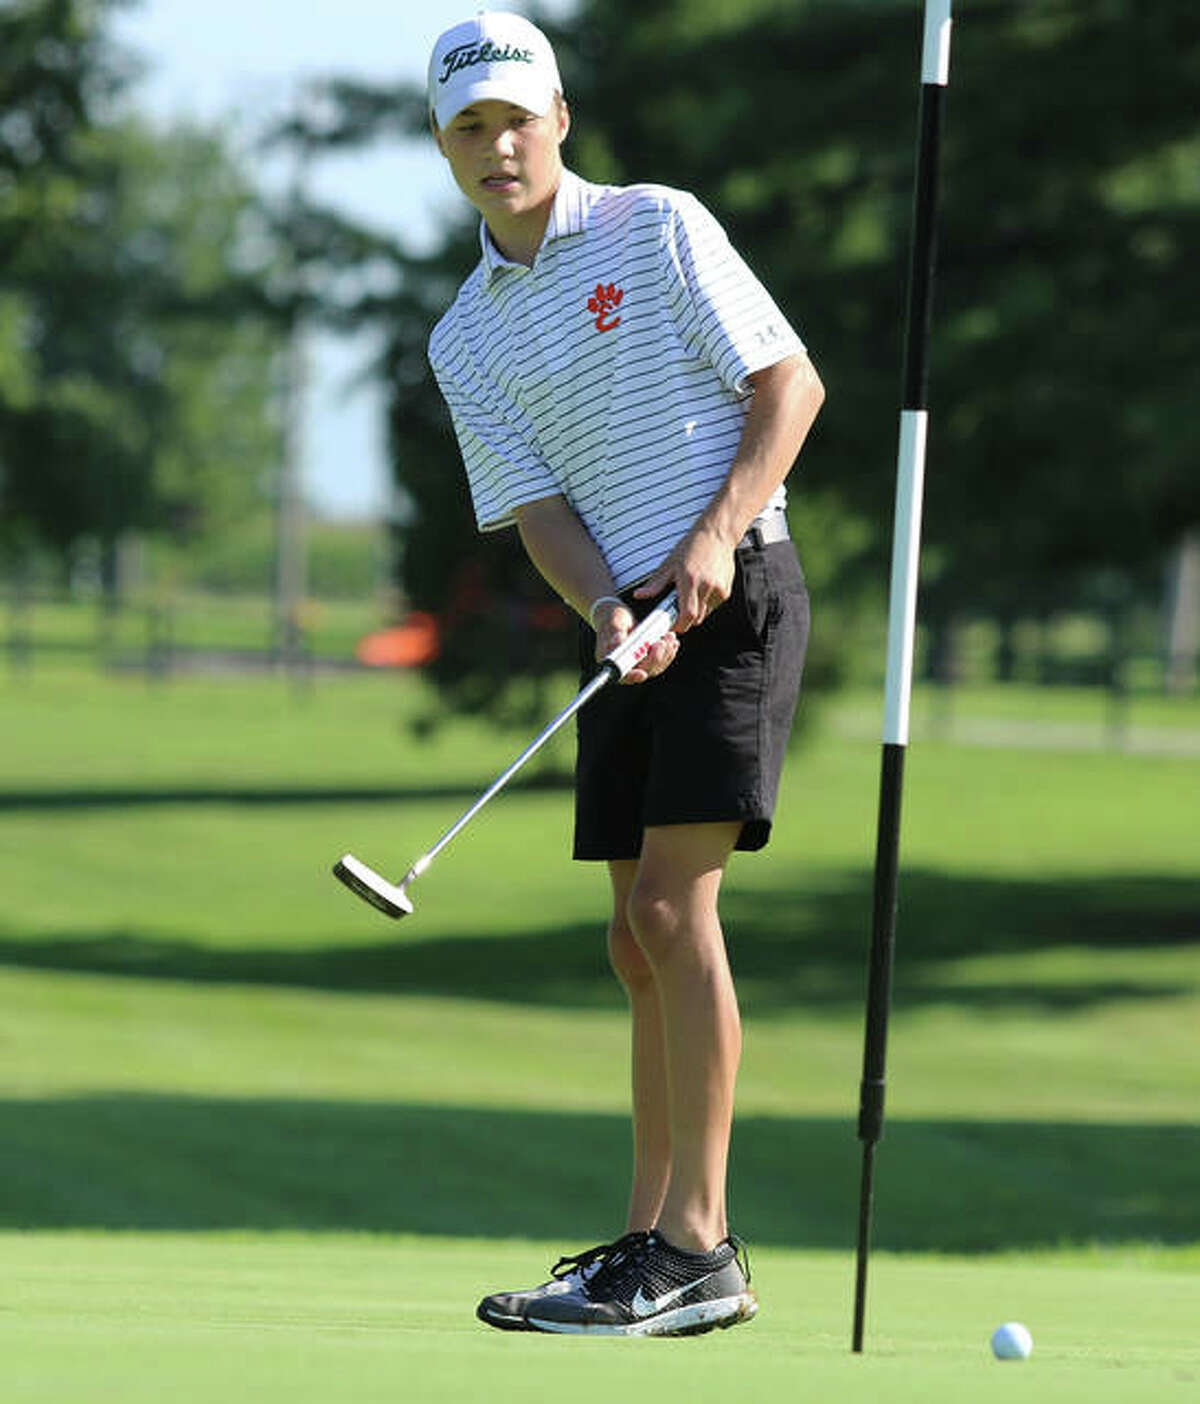 Edwardsville freshman Carter Crow, shown watching his putt stay wide left of the cup during the Hickory Stick Invite on Aug. 17 at Belk Park in Wood River, was at Stonewolf on Tuesday and shot 86 in the Southwestern Conference Tournament in Fairview Heights.